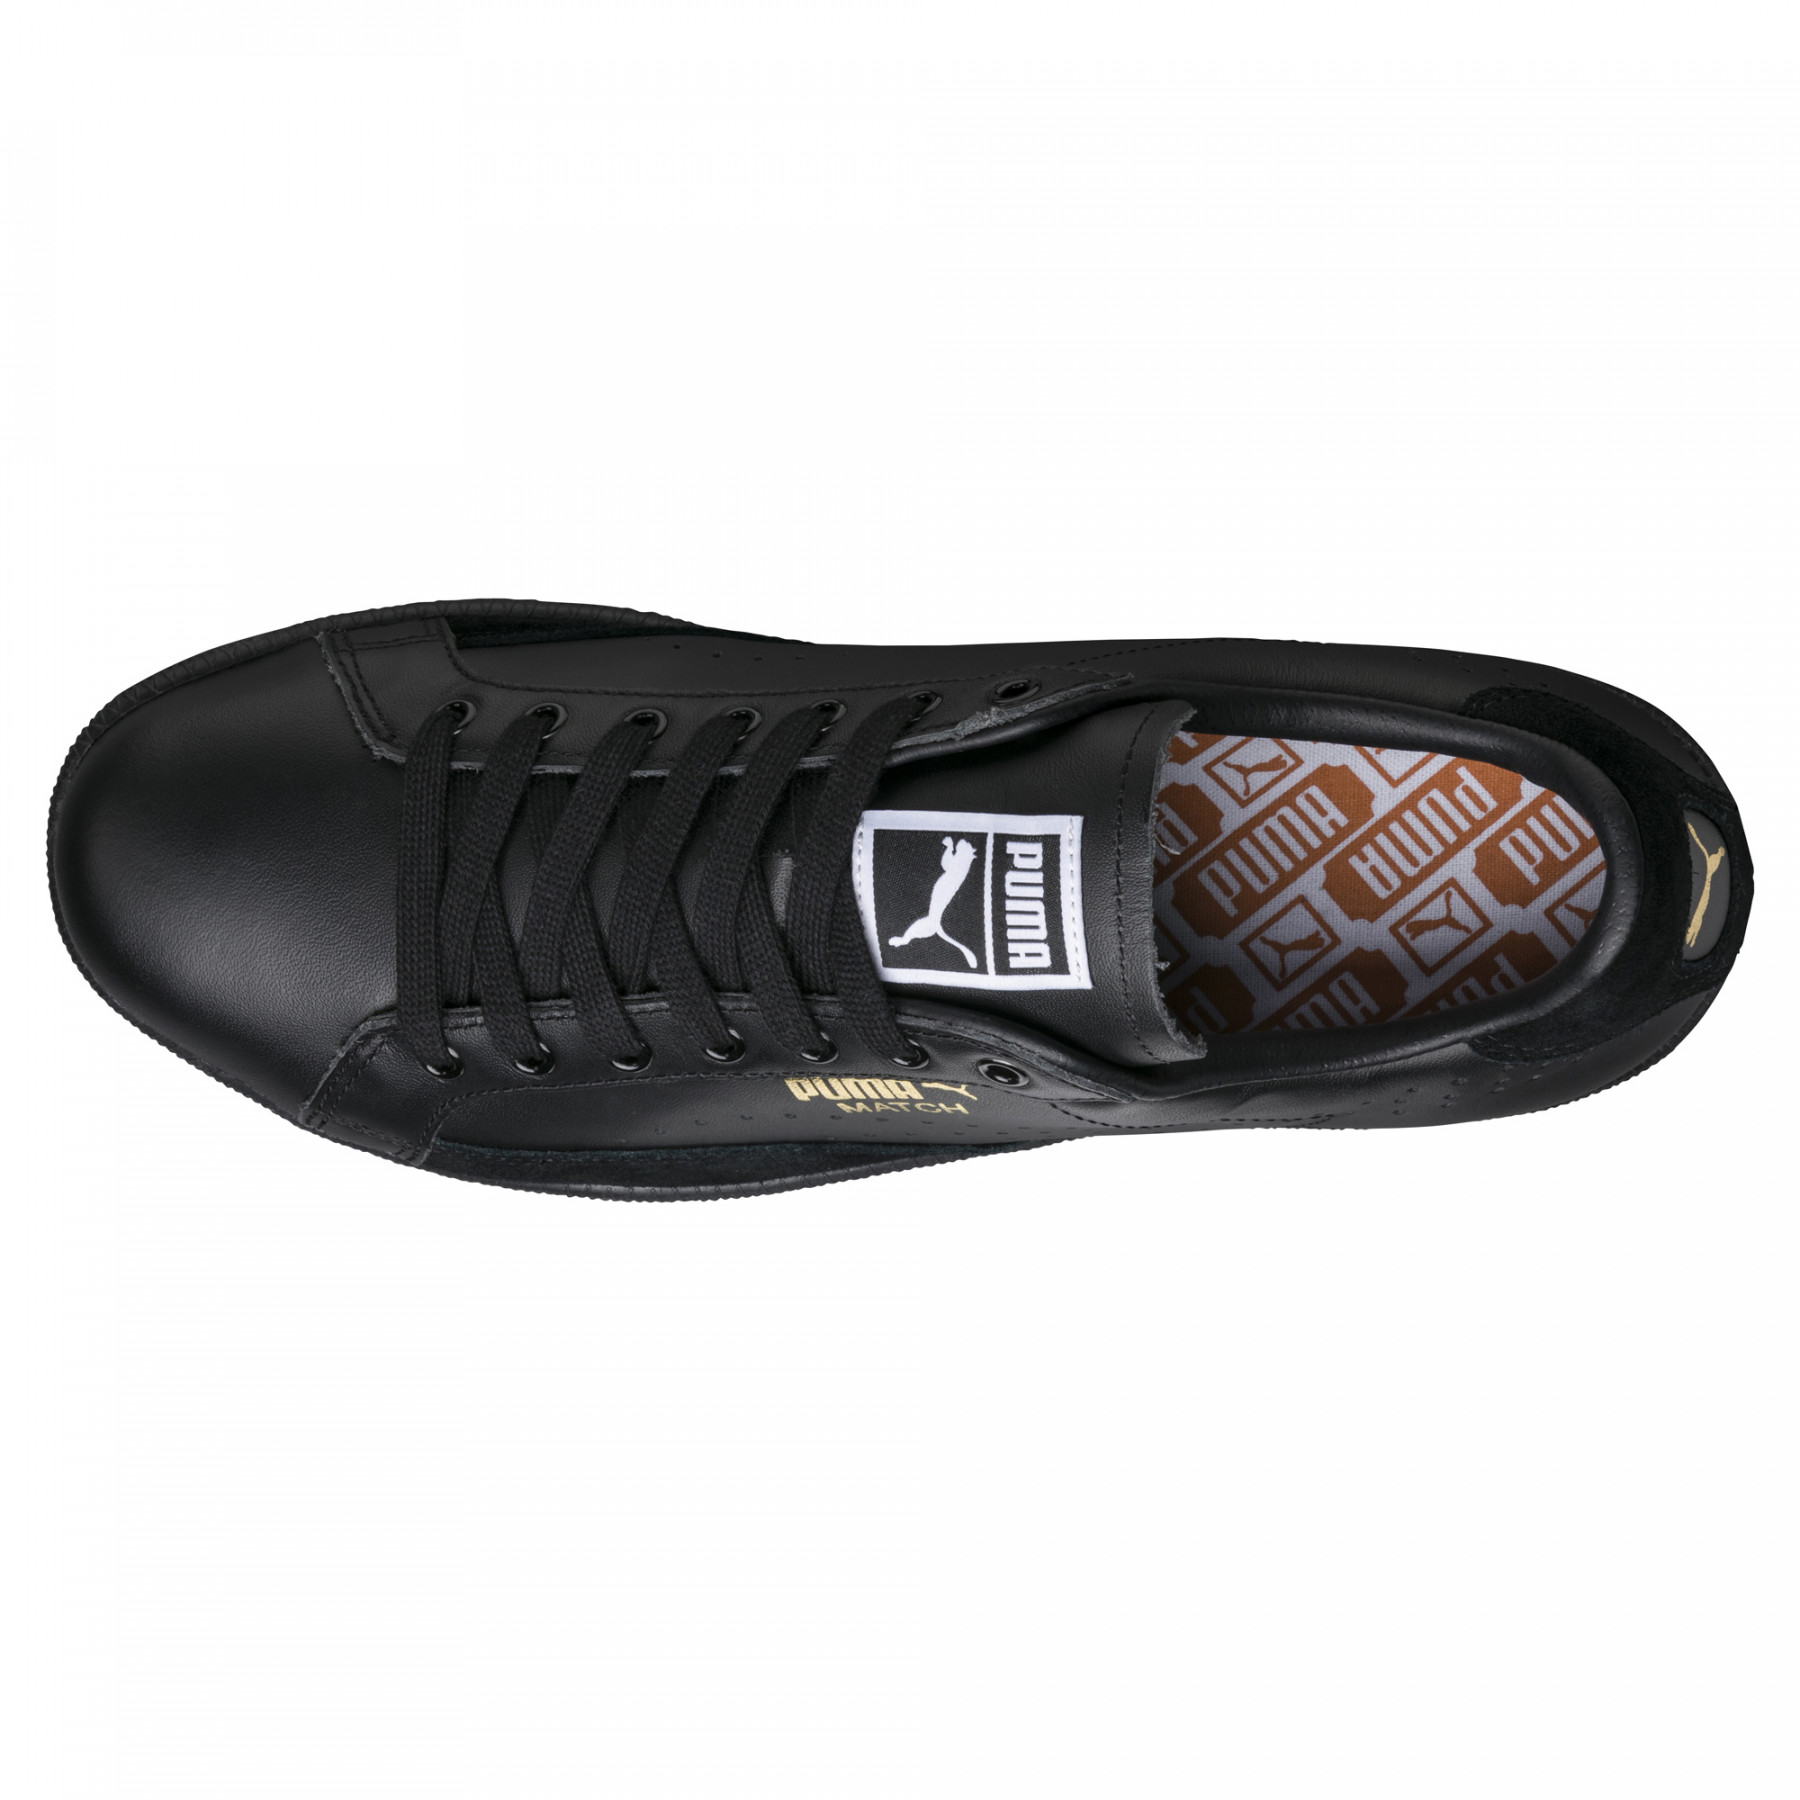 chaussures puma match hommes taille 40